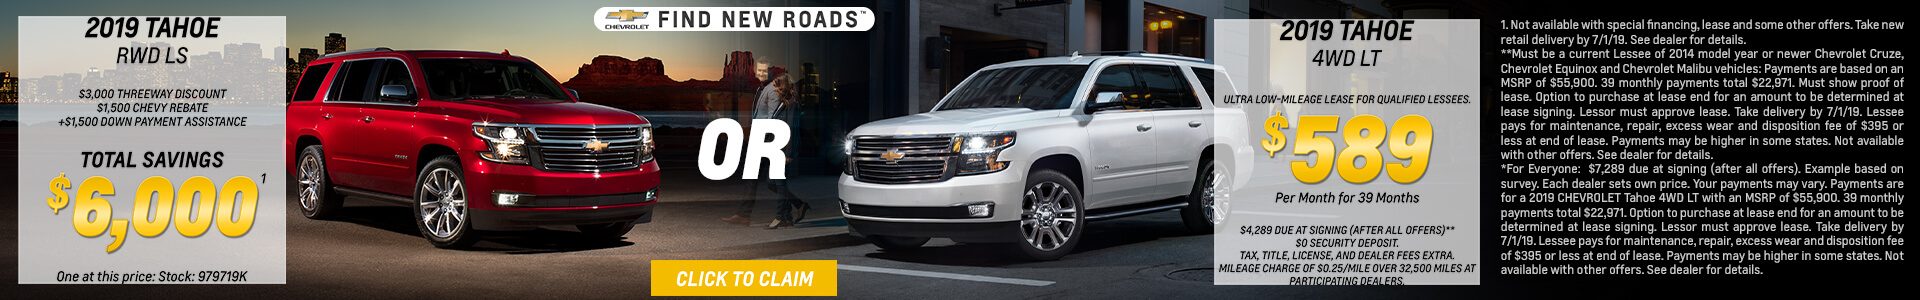 2019 Chevy Tahoe Lease for $589